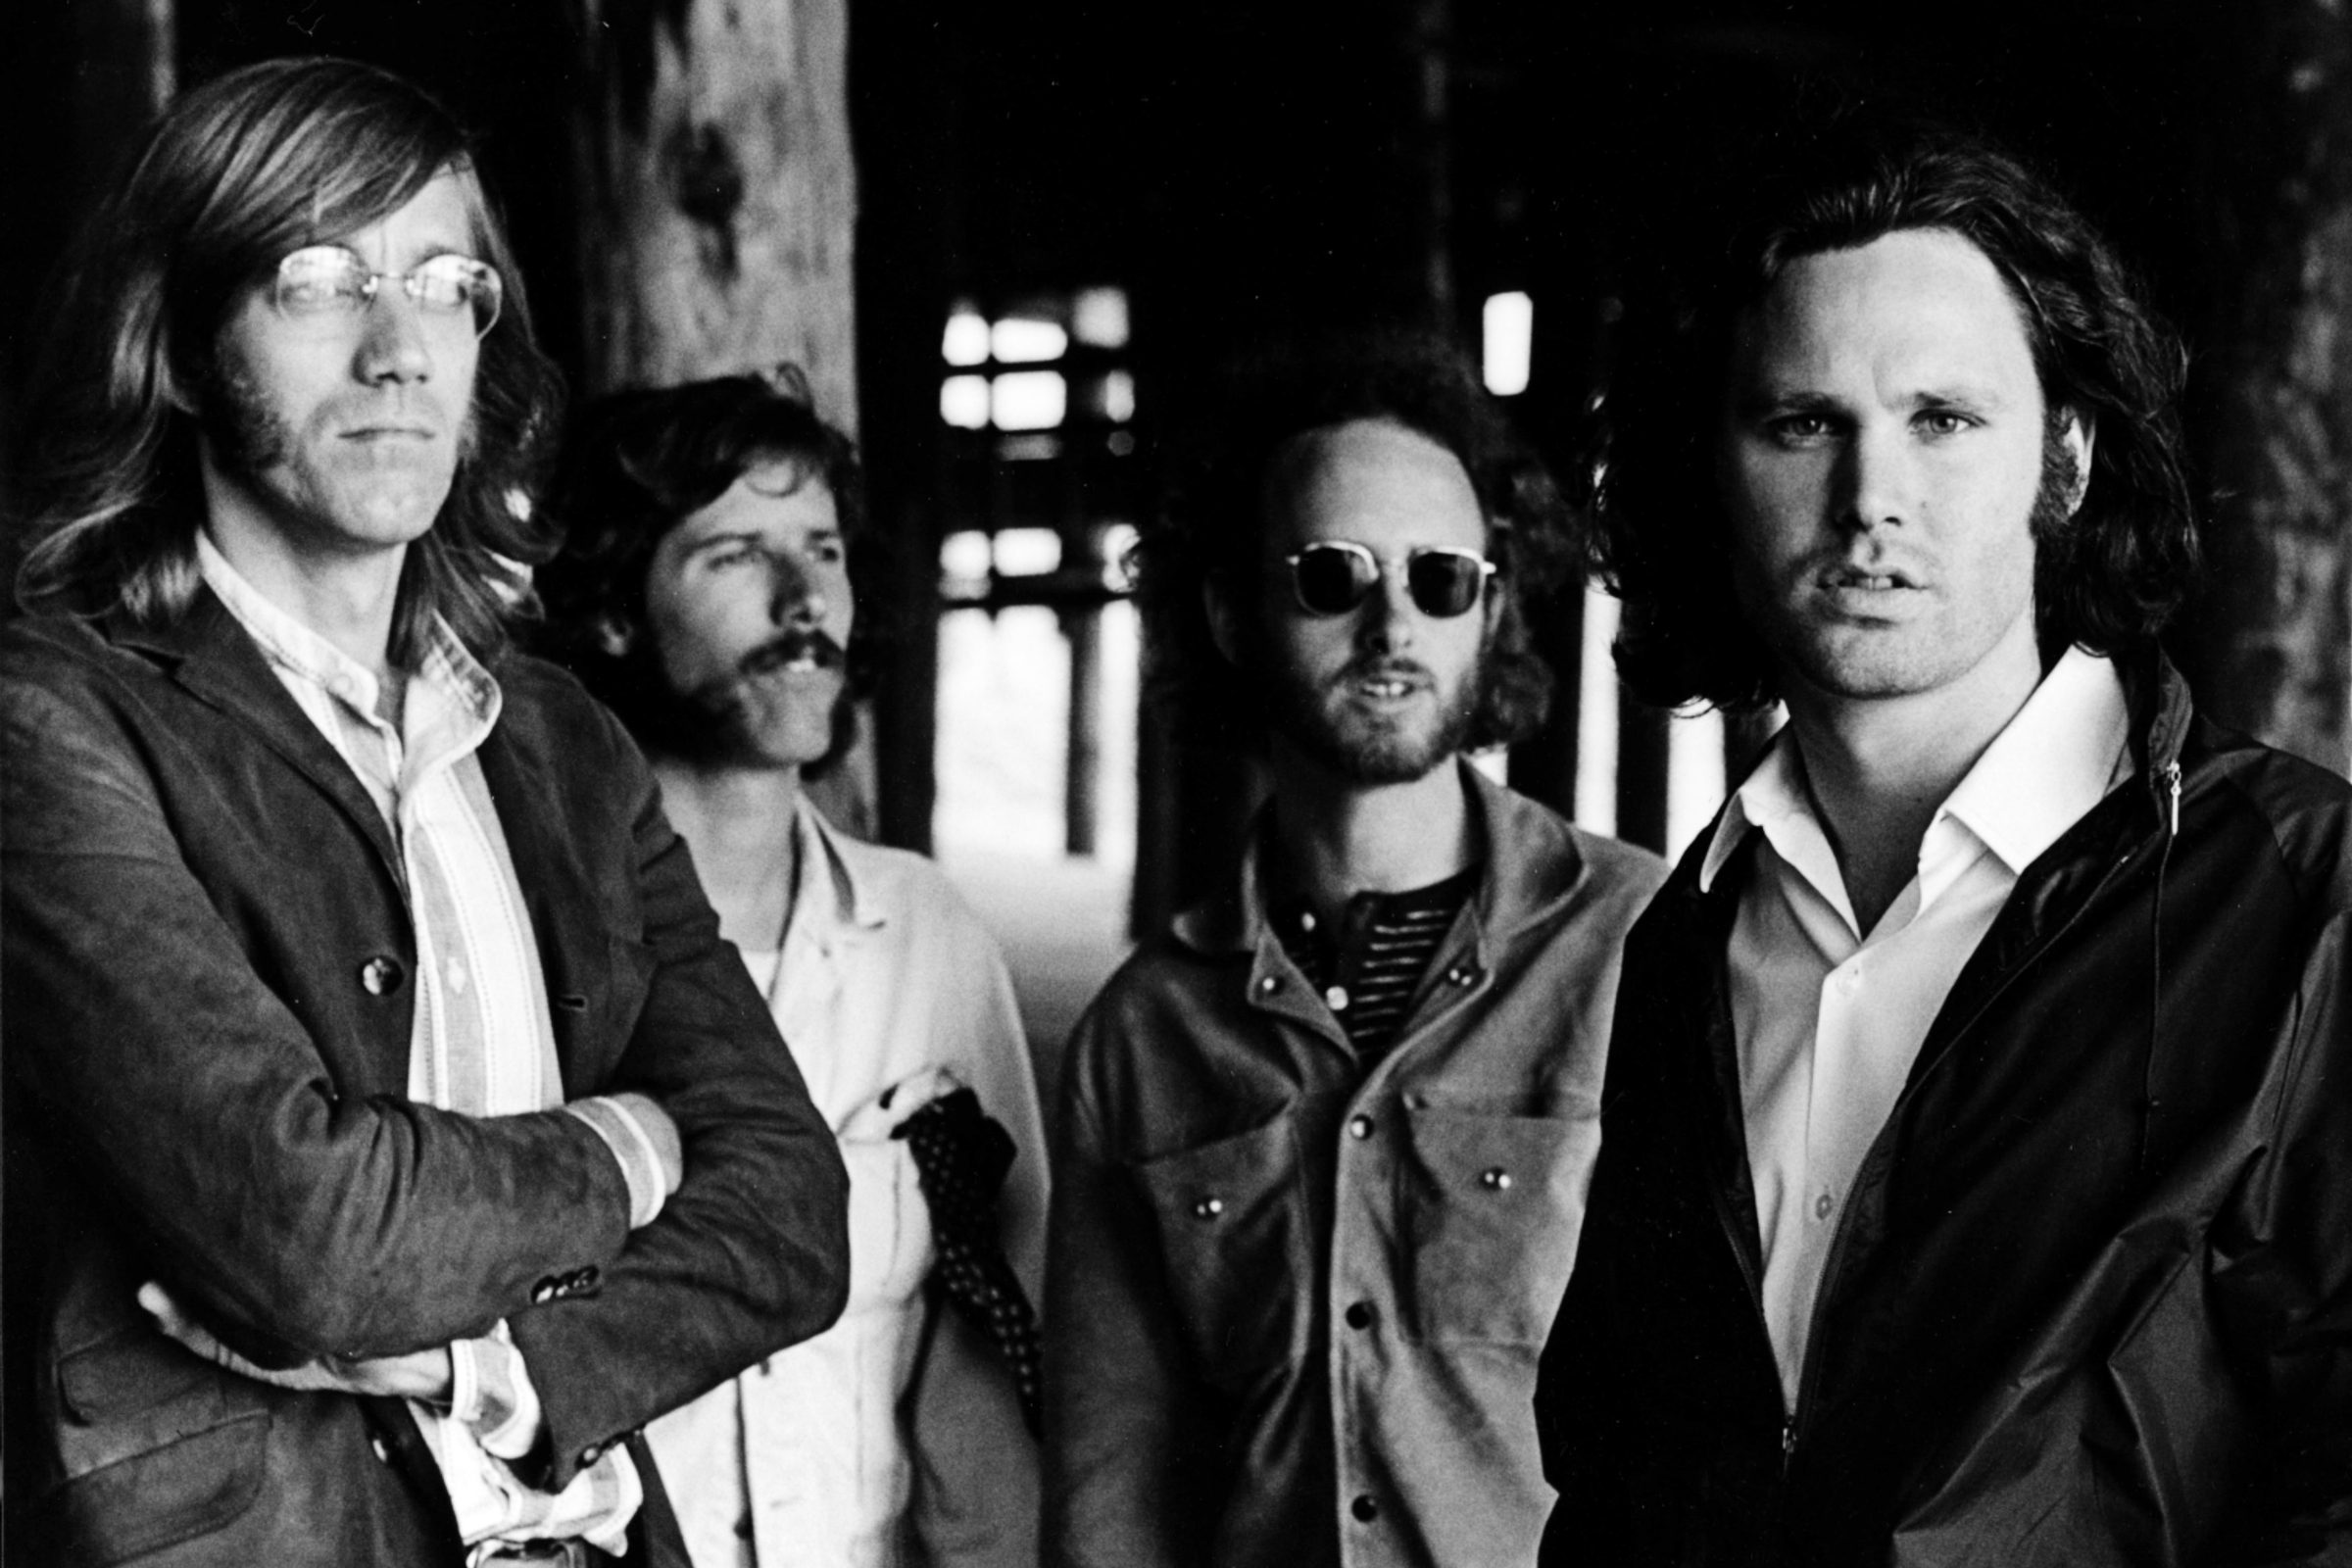 The Doors' Robby Krieger on 'Touch Me' and the Lyric Jim Morrison Refused to Sing